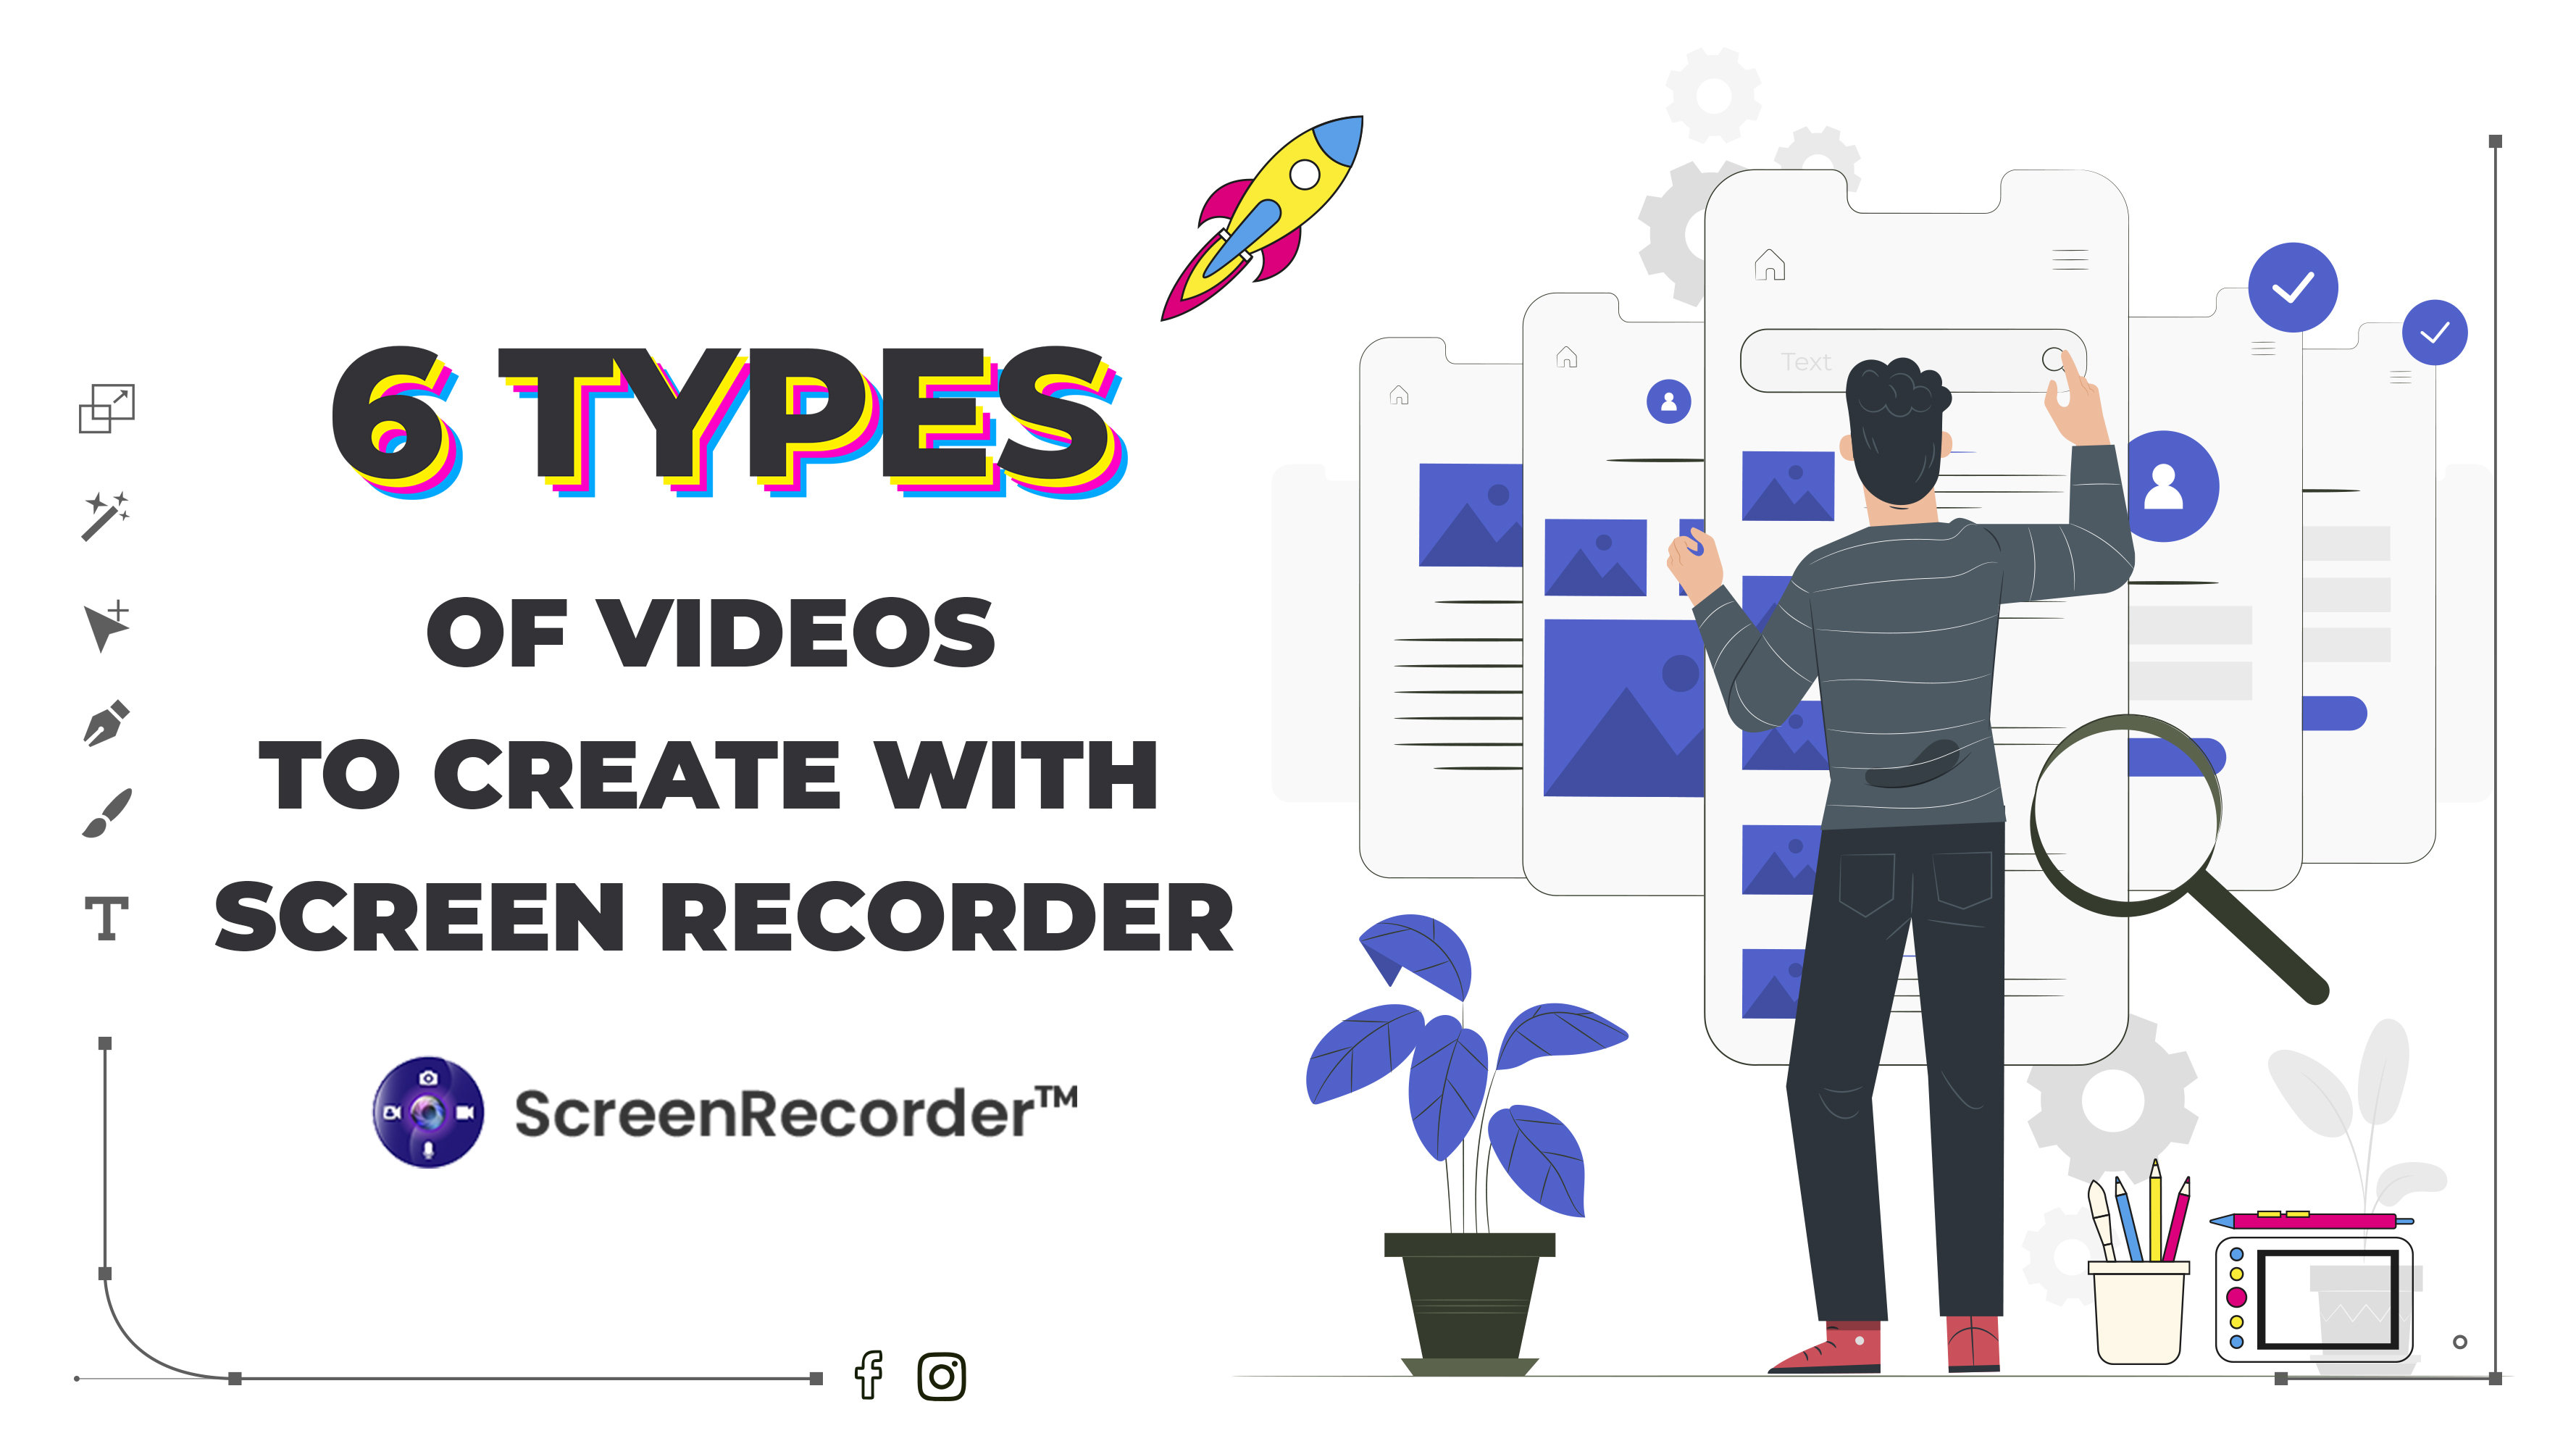 6 Types Of Videos To Create With Screen Recorder